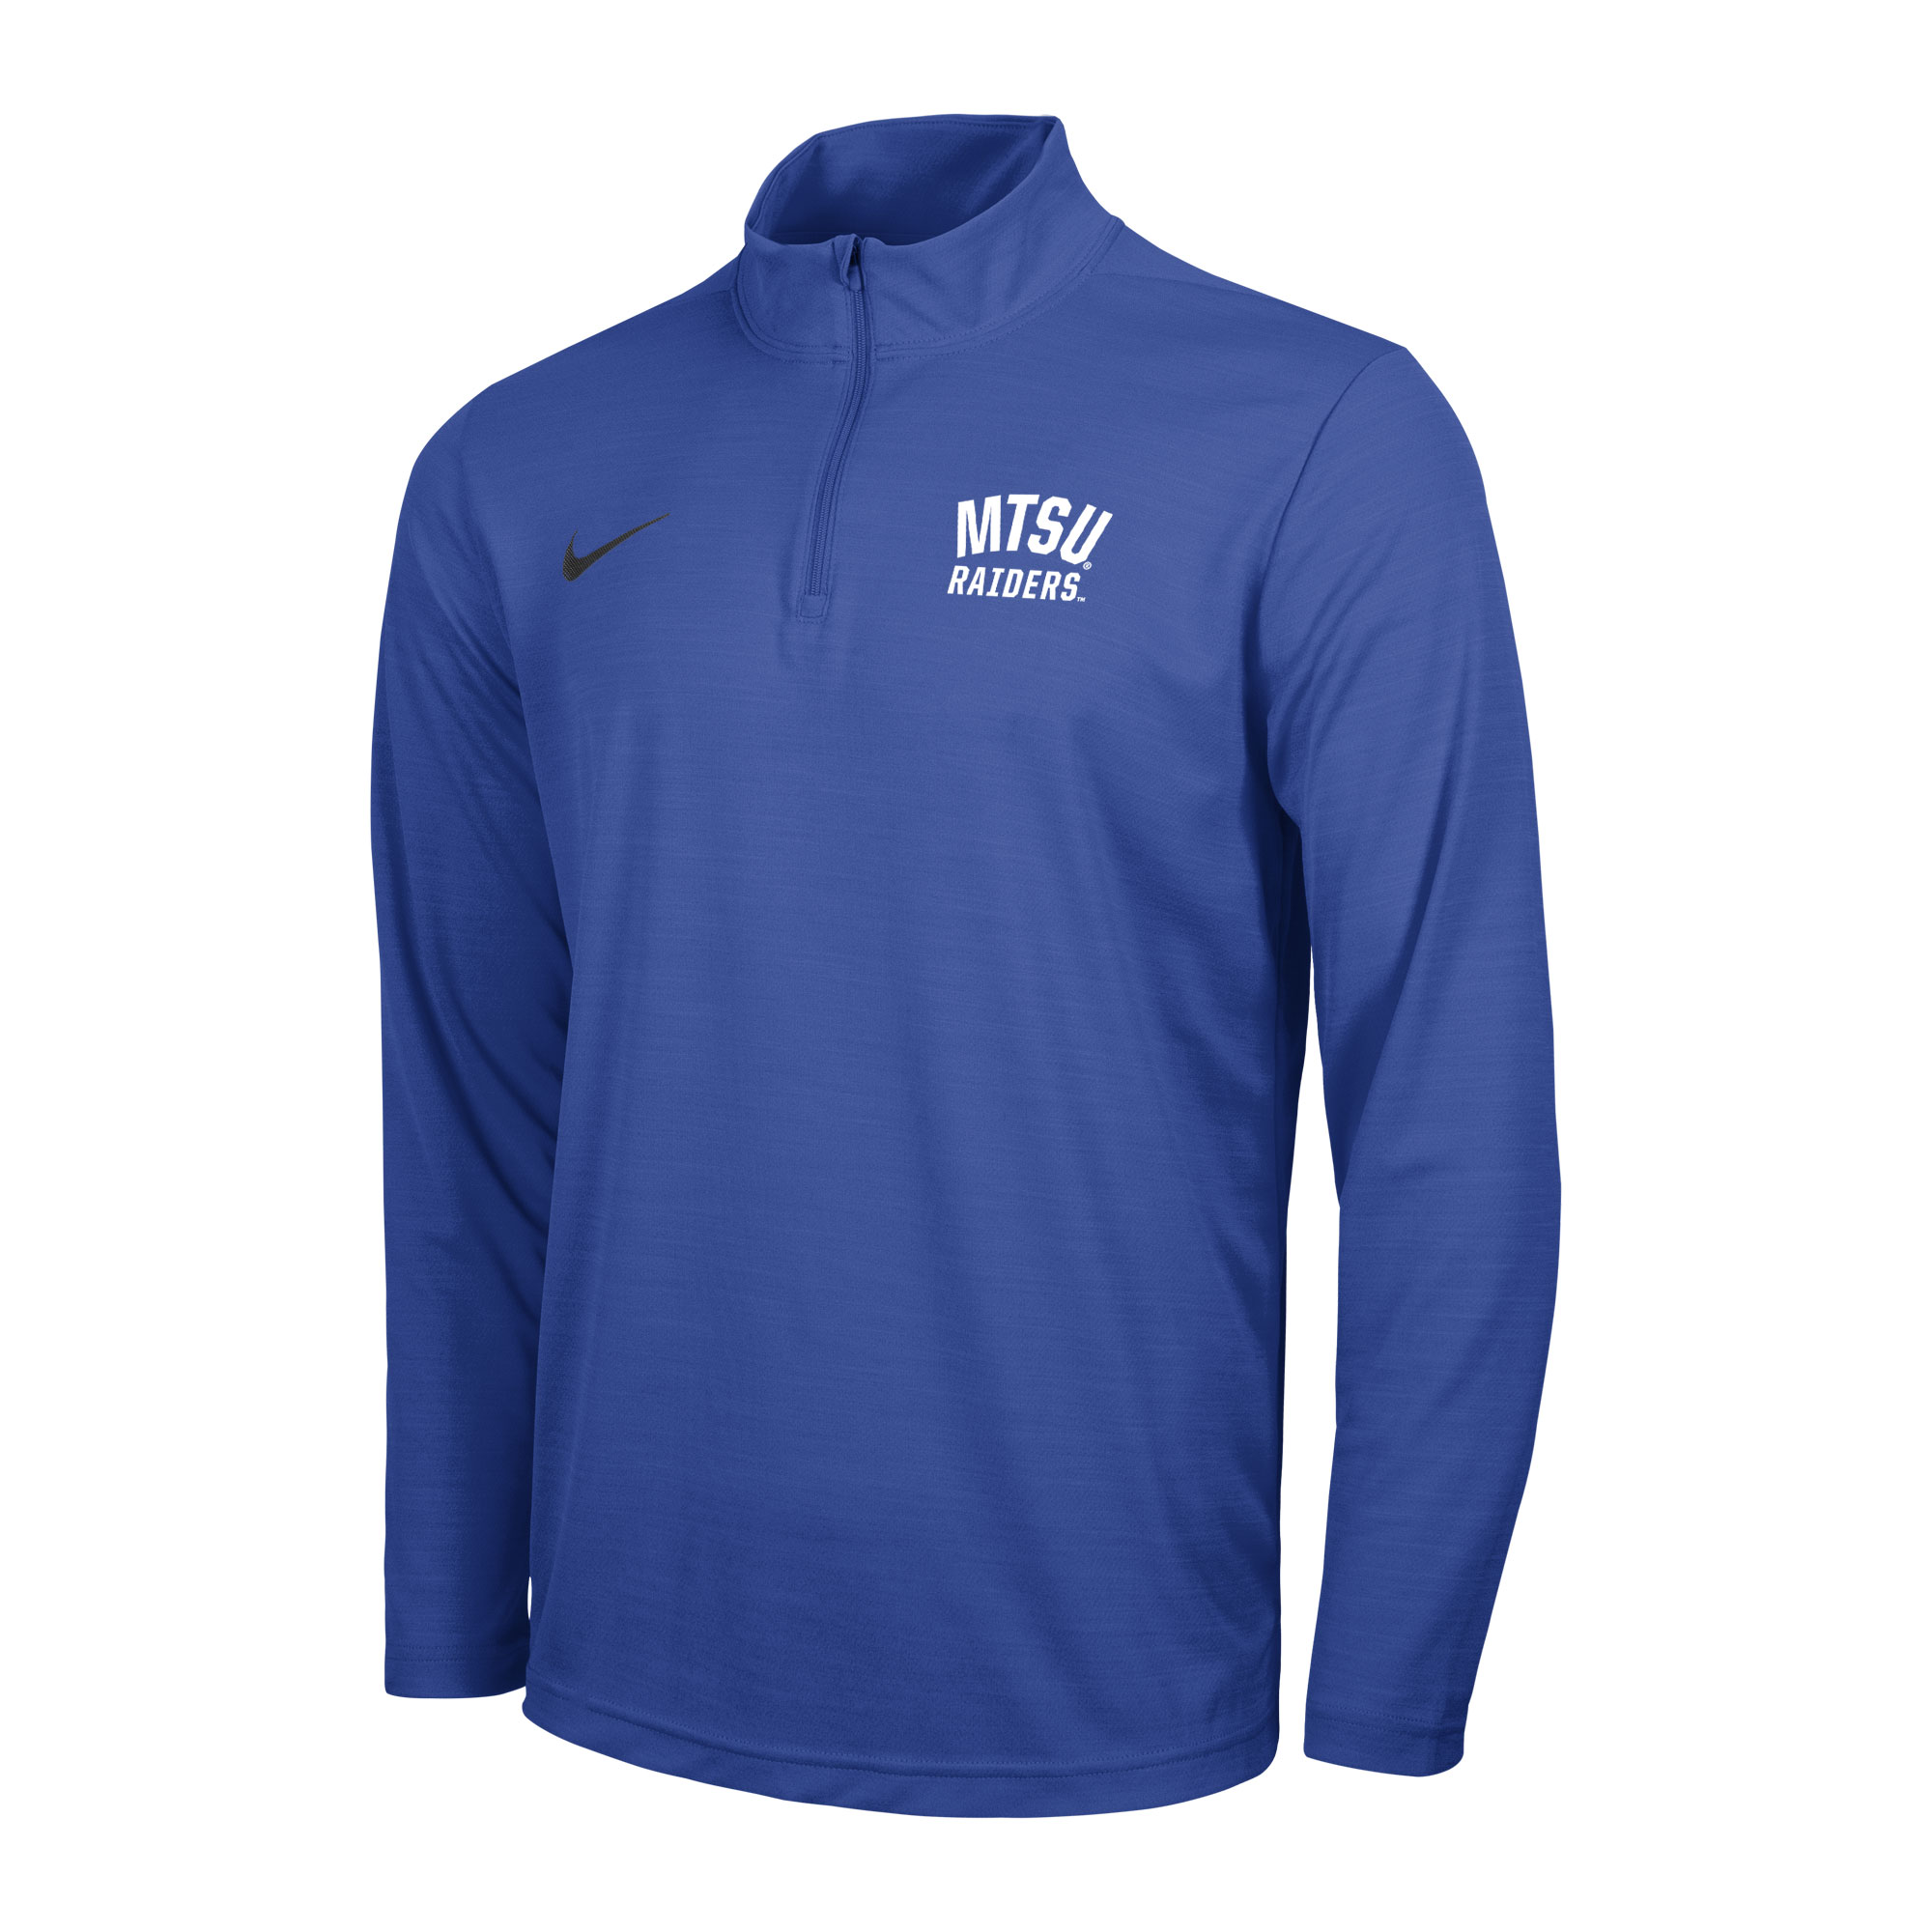 MTSU Raiders Intensity Nike® 1/4 Zip Pullover